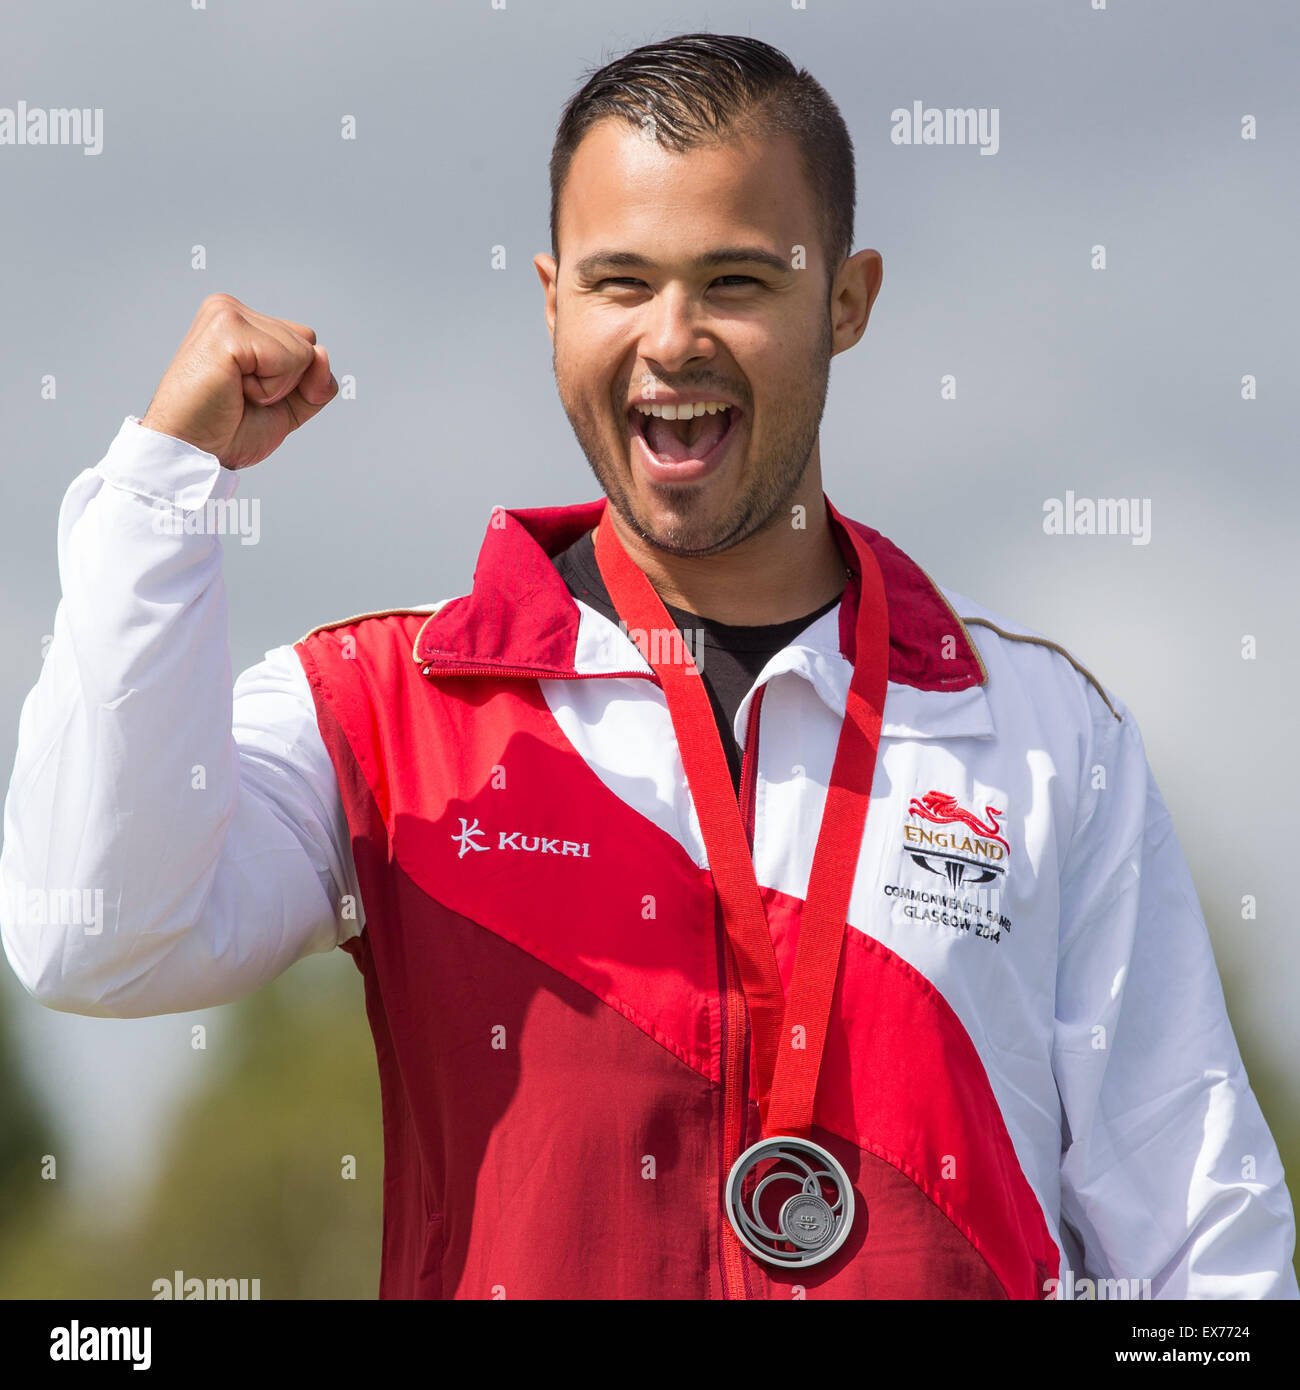 England's Aaron Heading celebrates winning silver in the men's trap at the Commonwealth Games in Glasgow - Stock Image